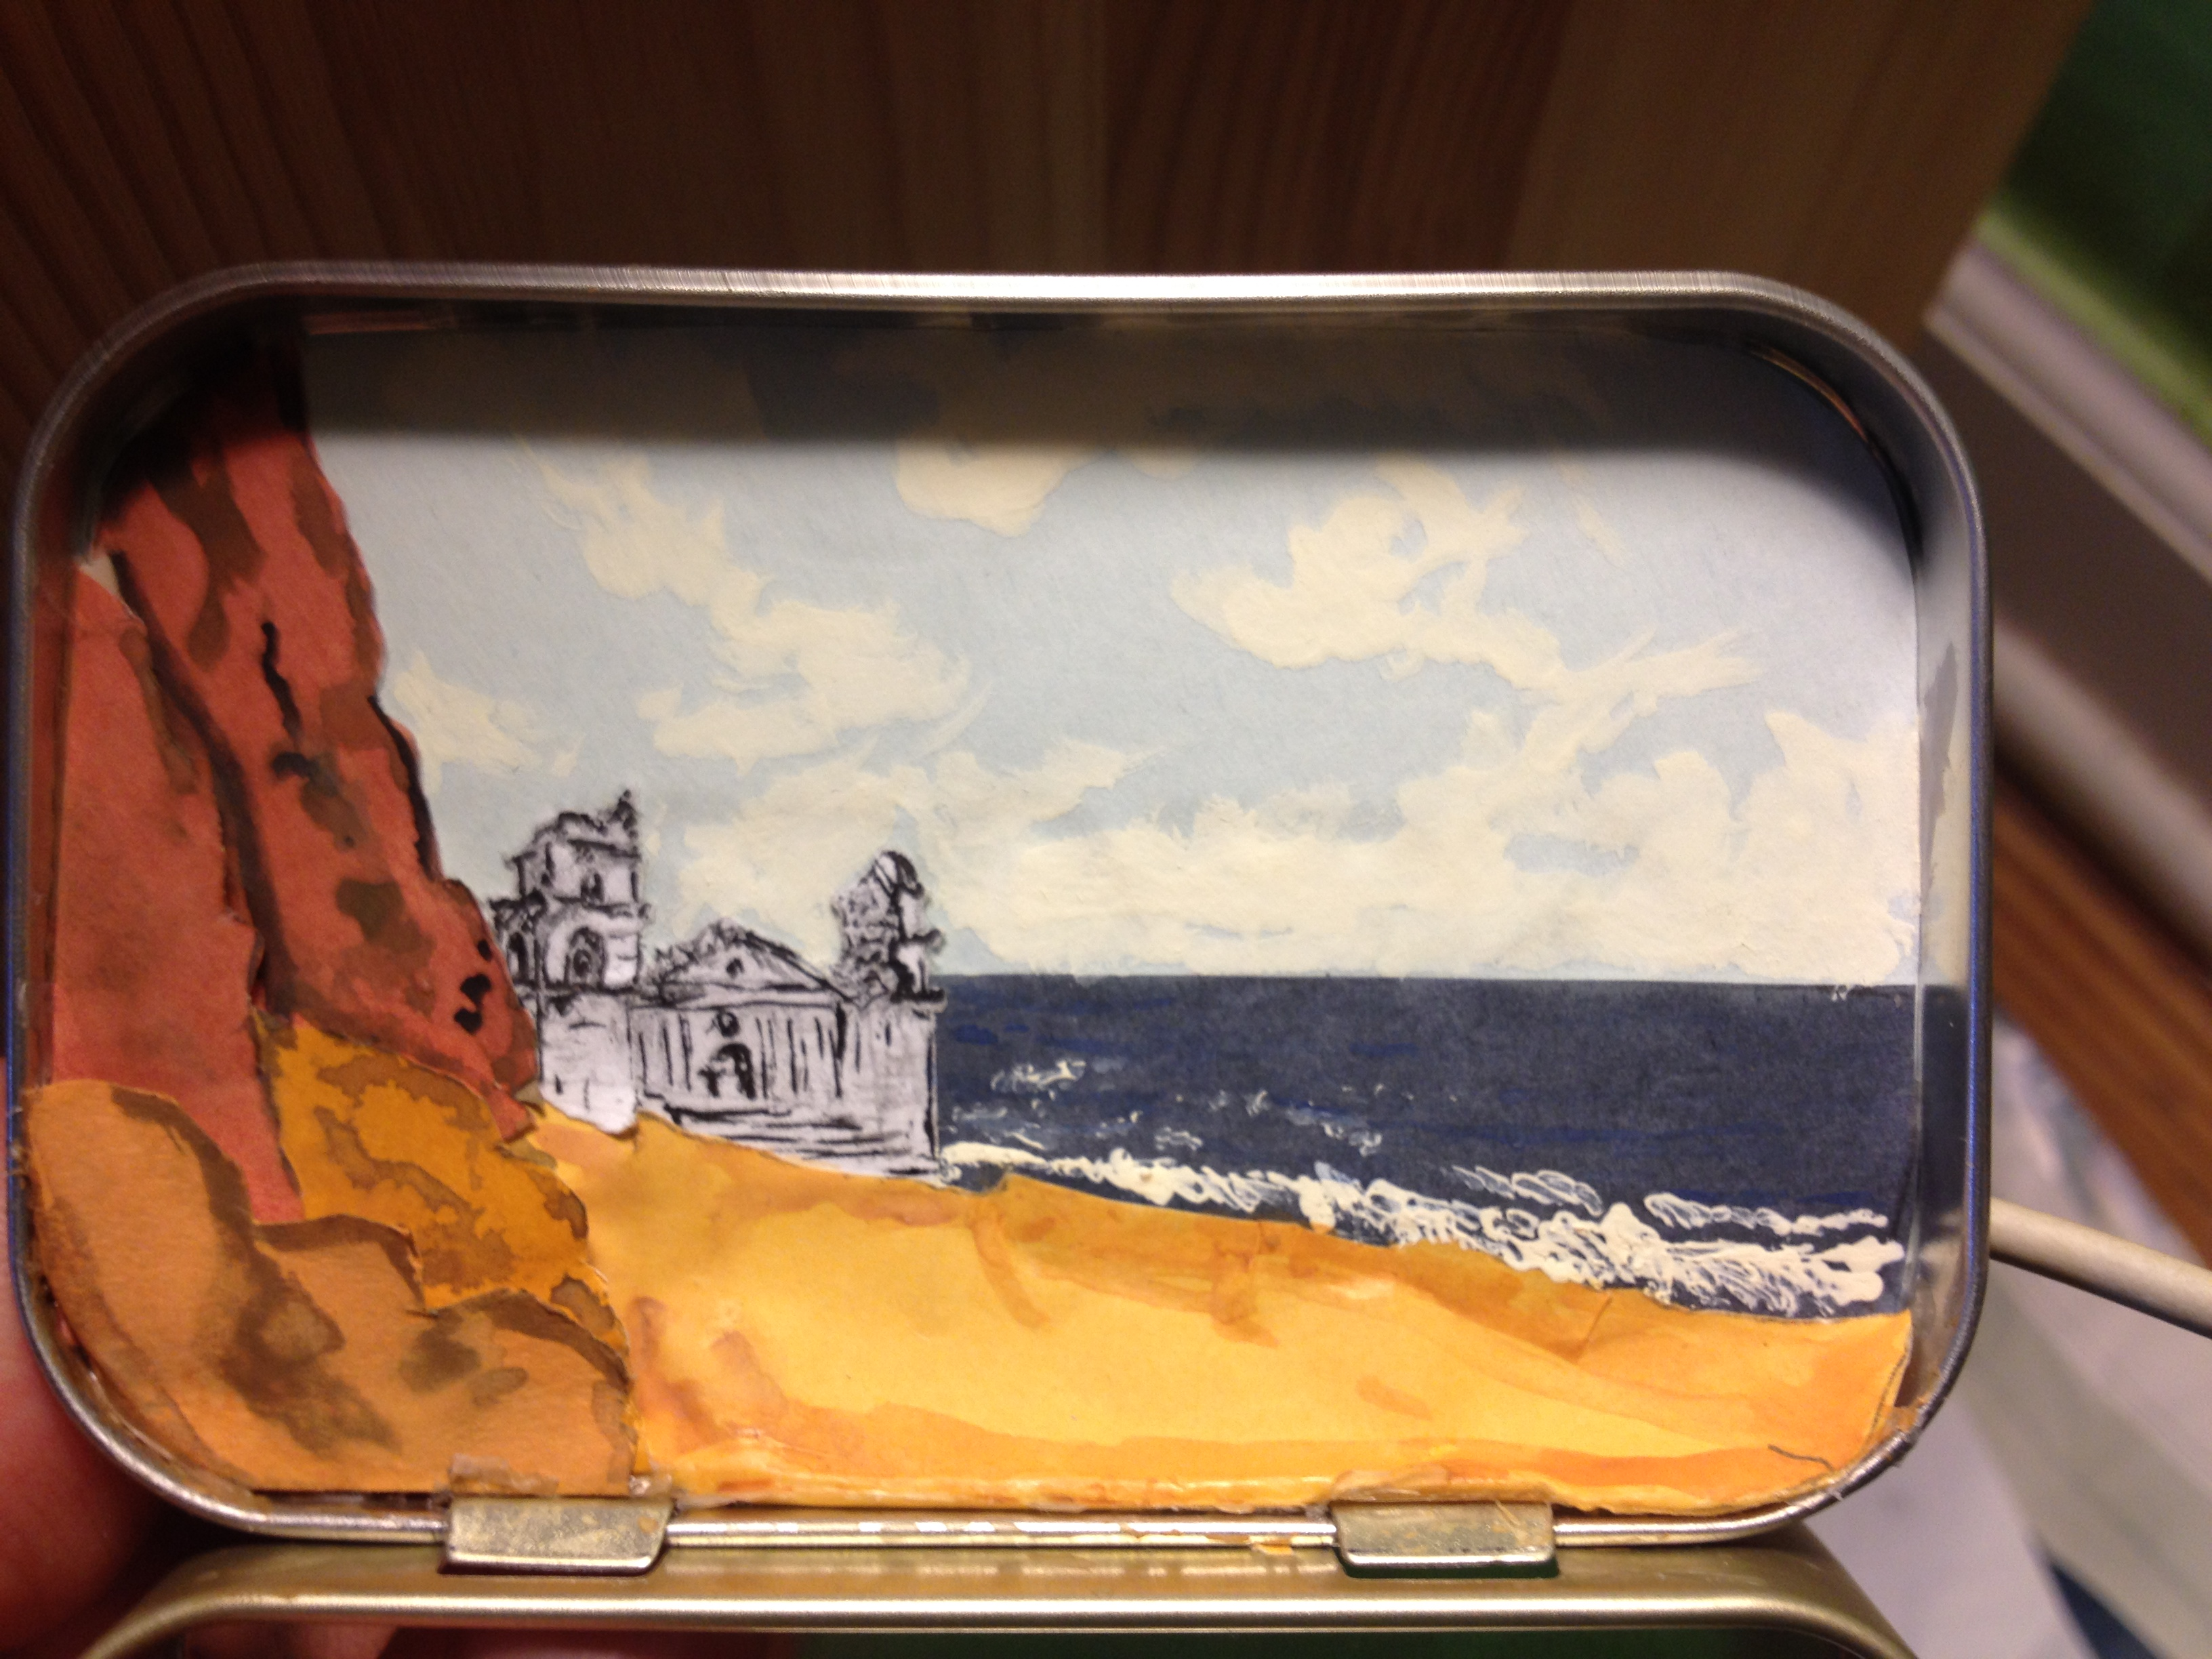 MYSTERIOUS...a palace is lapped by waves on a rocky coast in this dream box